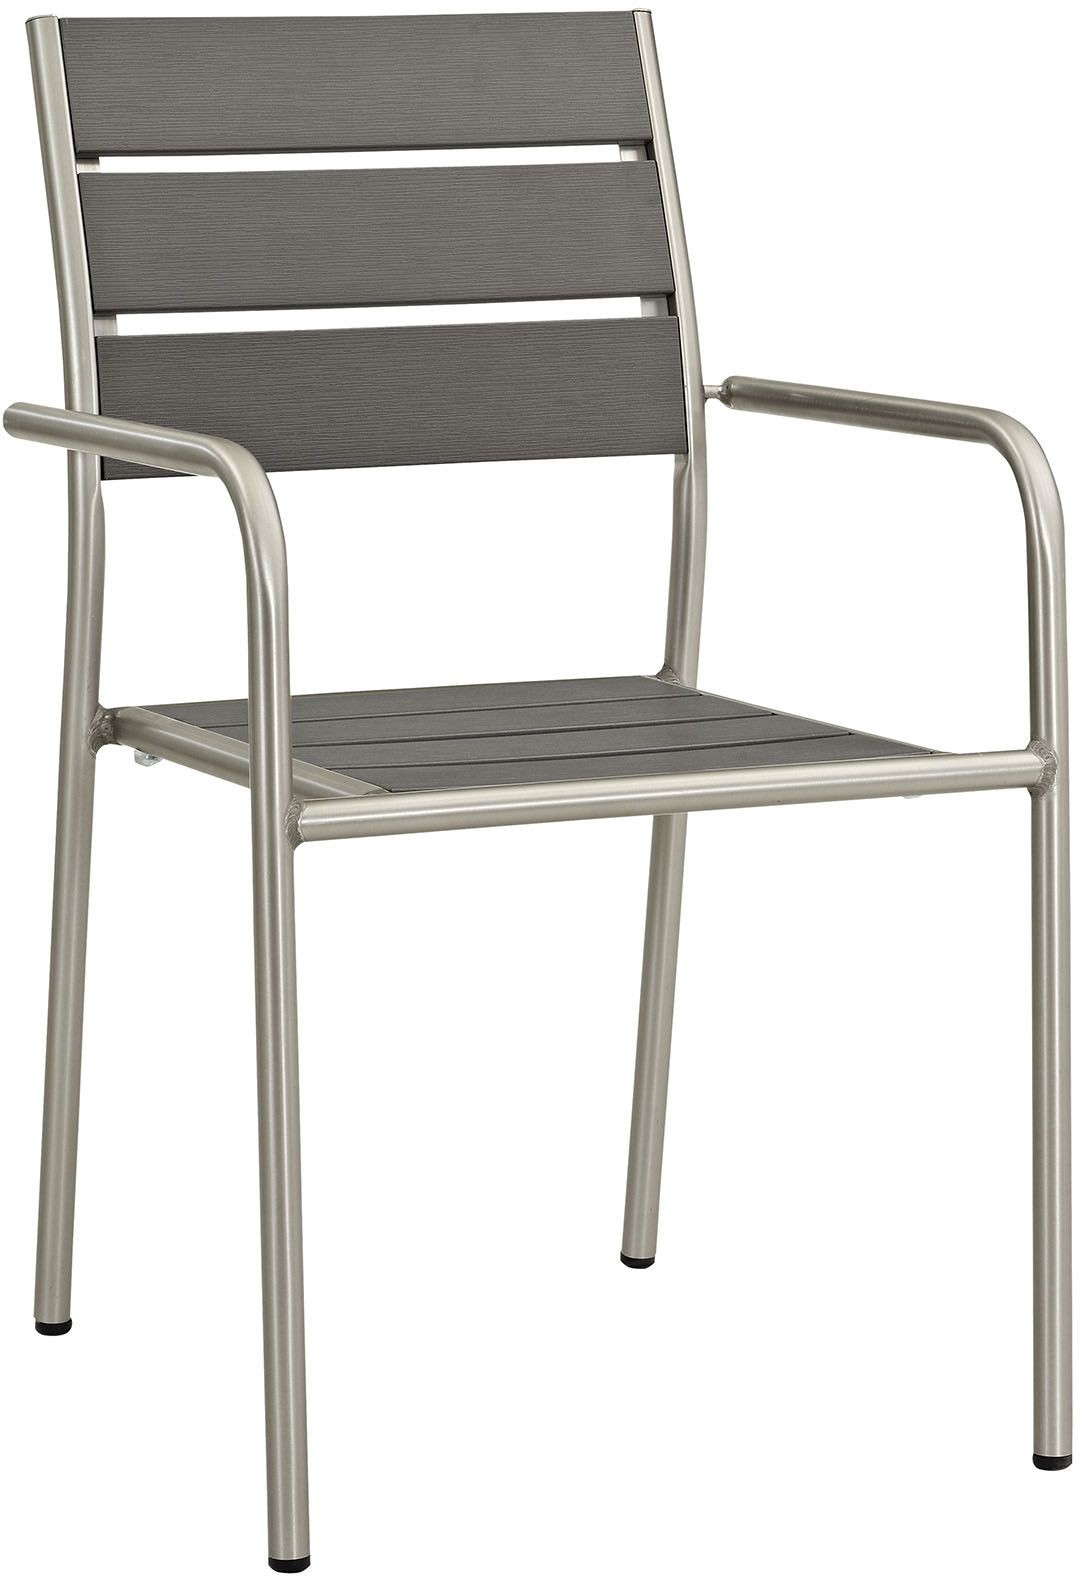 6 Chair Patio Set Cover: Shore Silver Gray Aluminum Outdoor Patio Dining Chair From